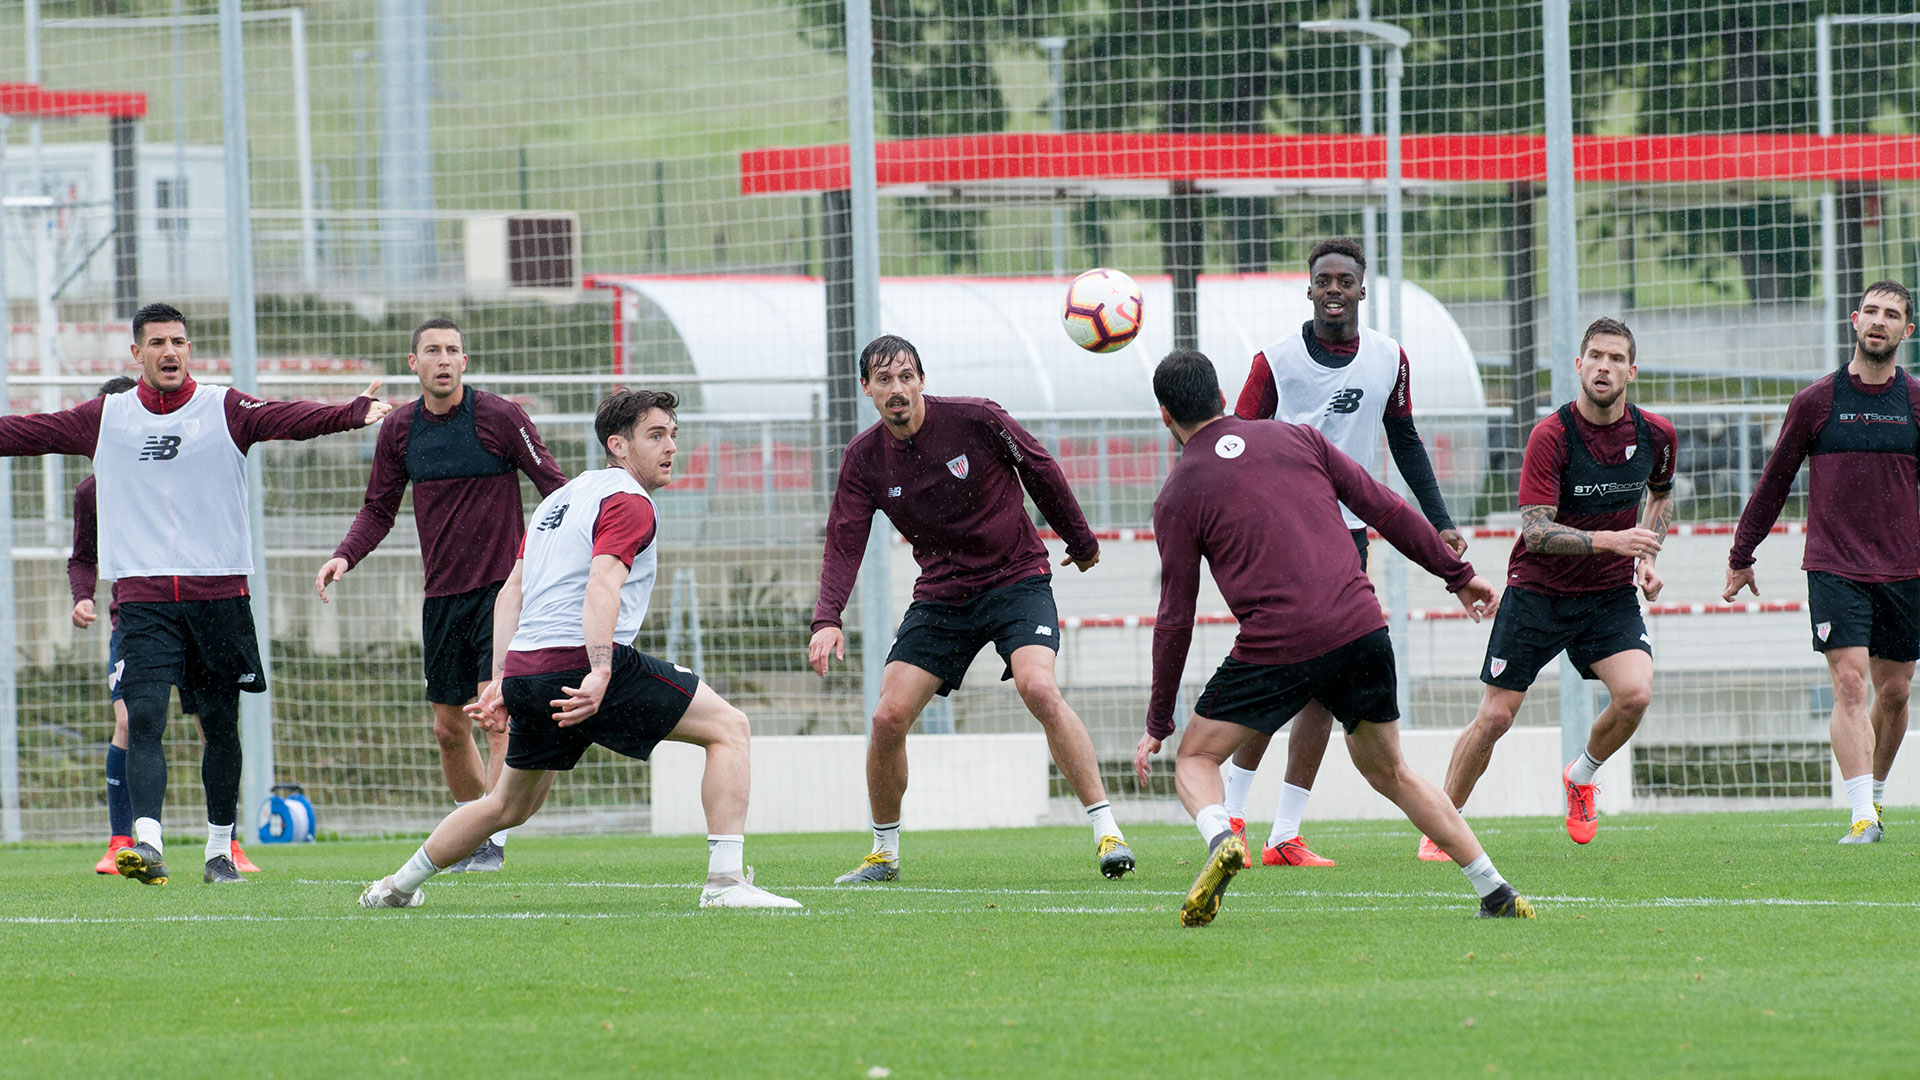 Last training sesision in Lezama for the first team